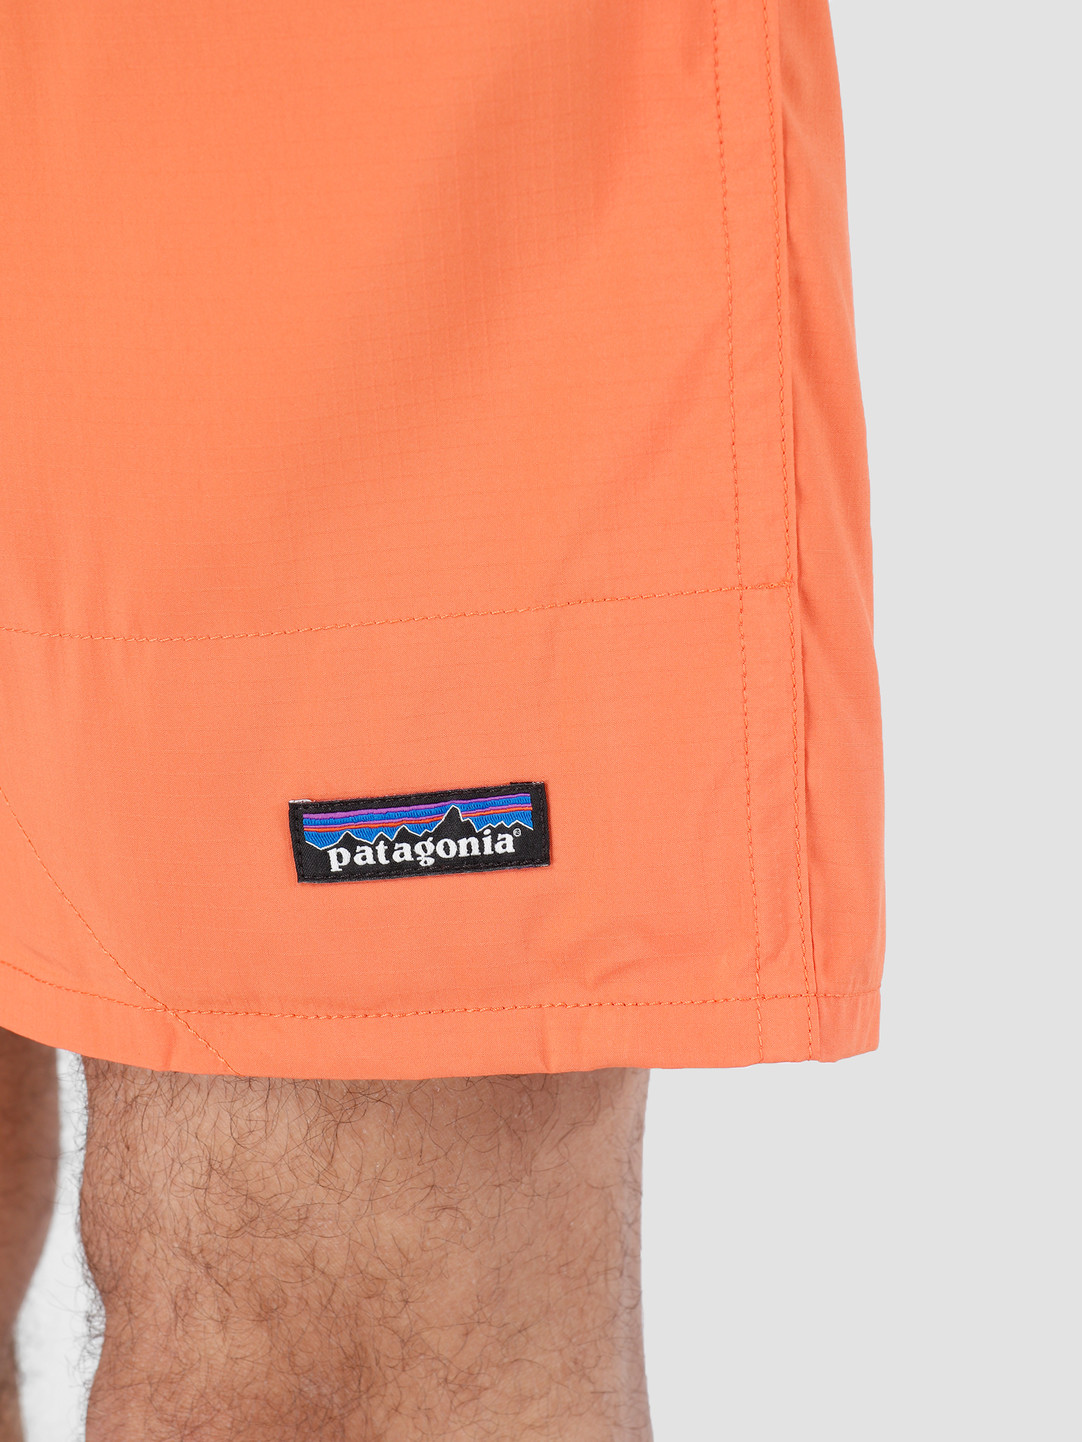 Patagonia Patagonia Baggies Lights Sunset Orange 58046